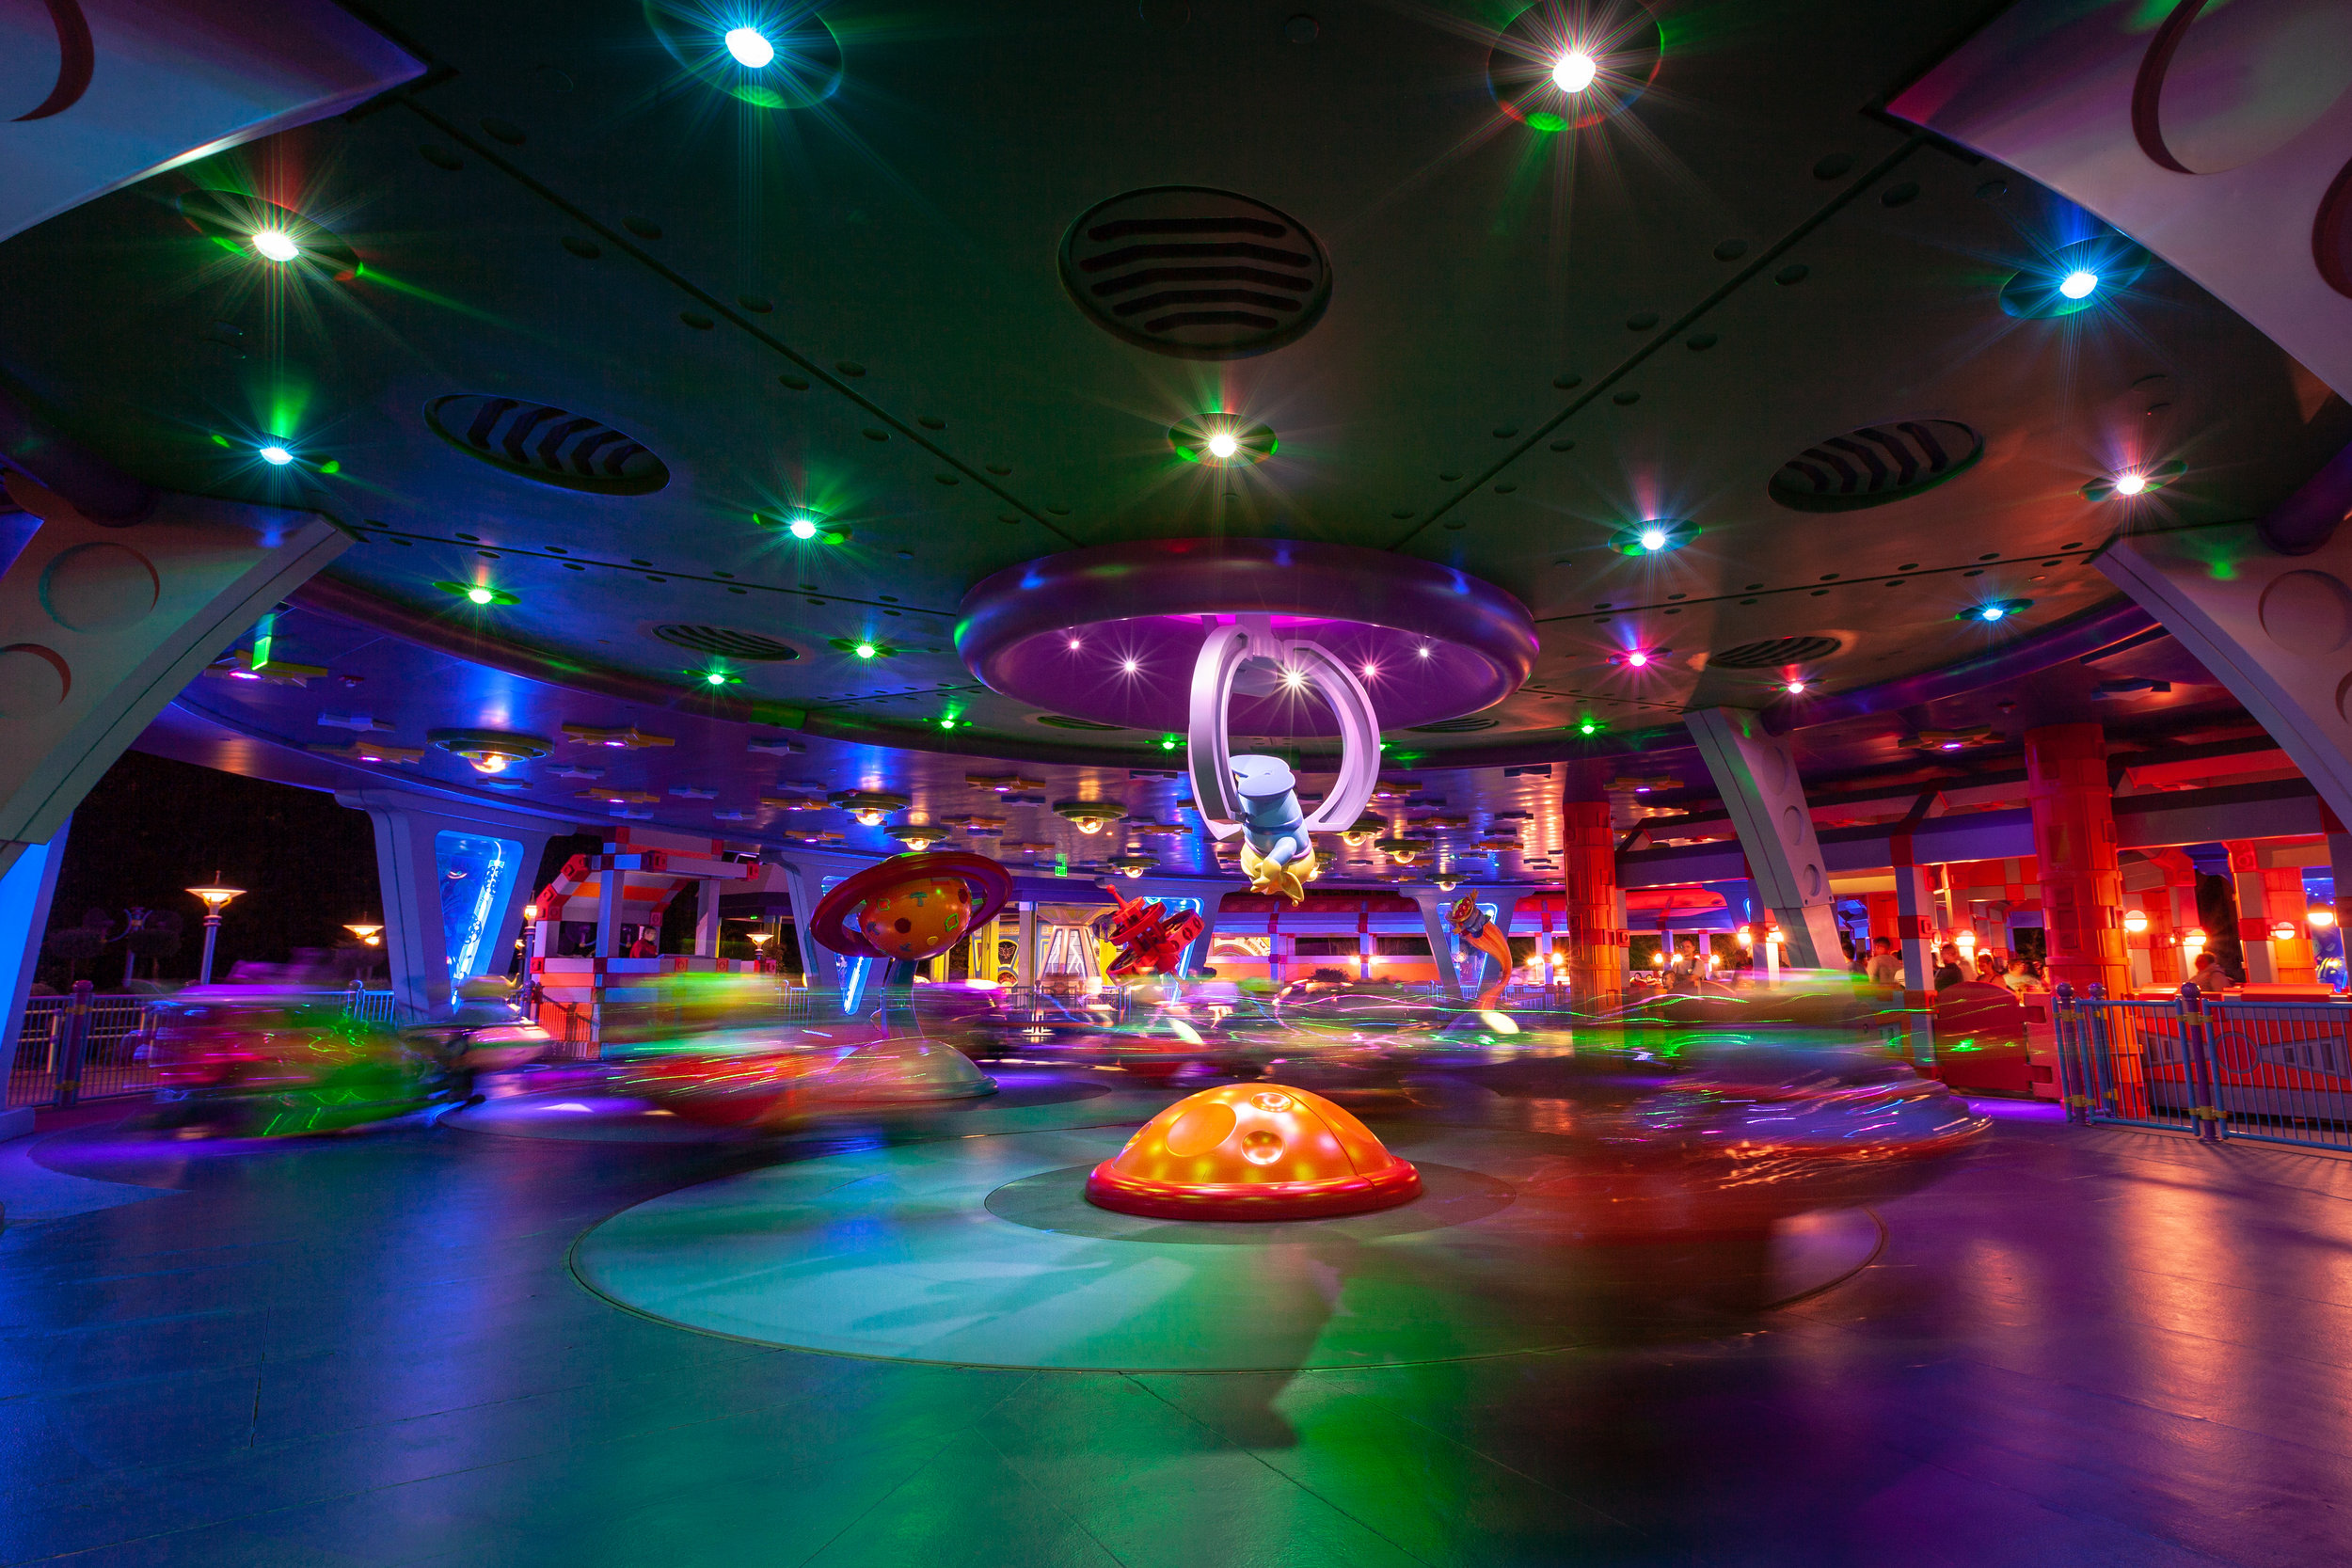 Alien Swirling Saucers at Toy Story Land. Shot with: Canon 5D Mark II, 16-35mm 2.8 II lens at 16mm. Exposure 2.0 sec at f/10, ISO 100.